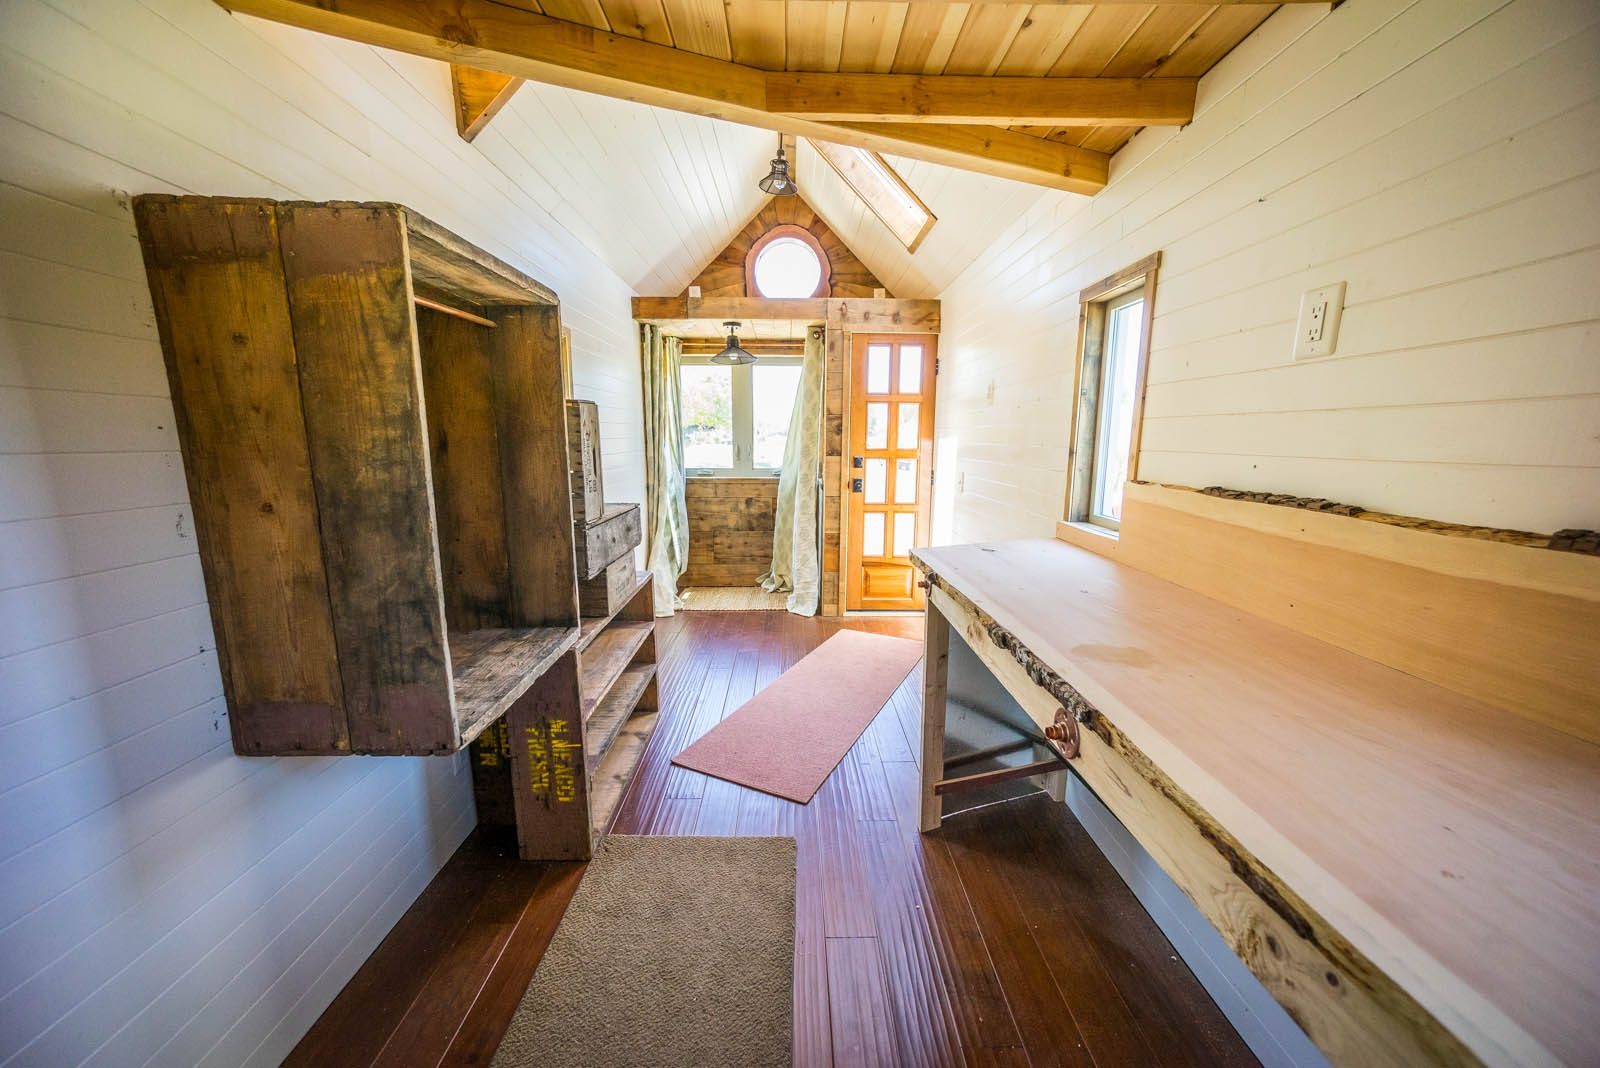 Tiny house giant journey interior tiny house giant journey for Interior designs for tiny houses